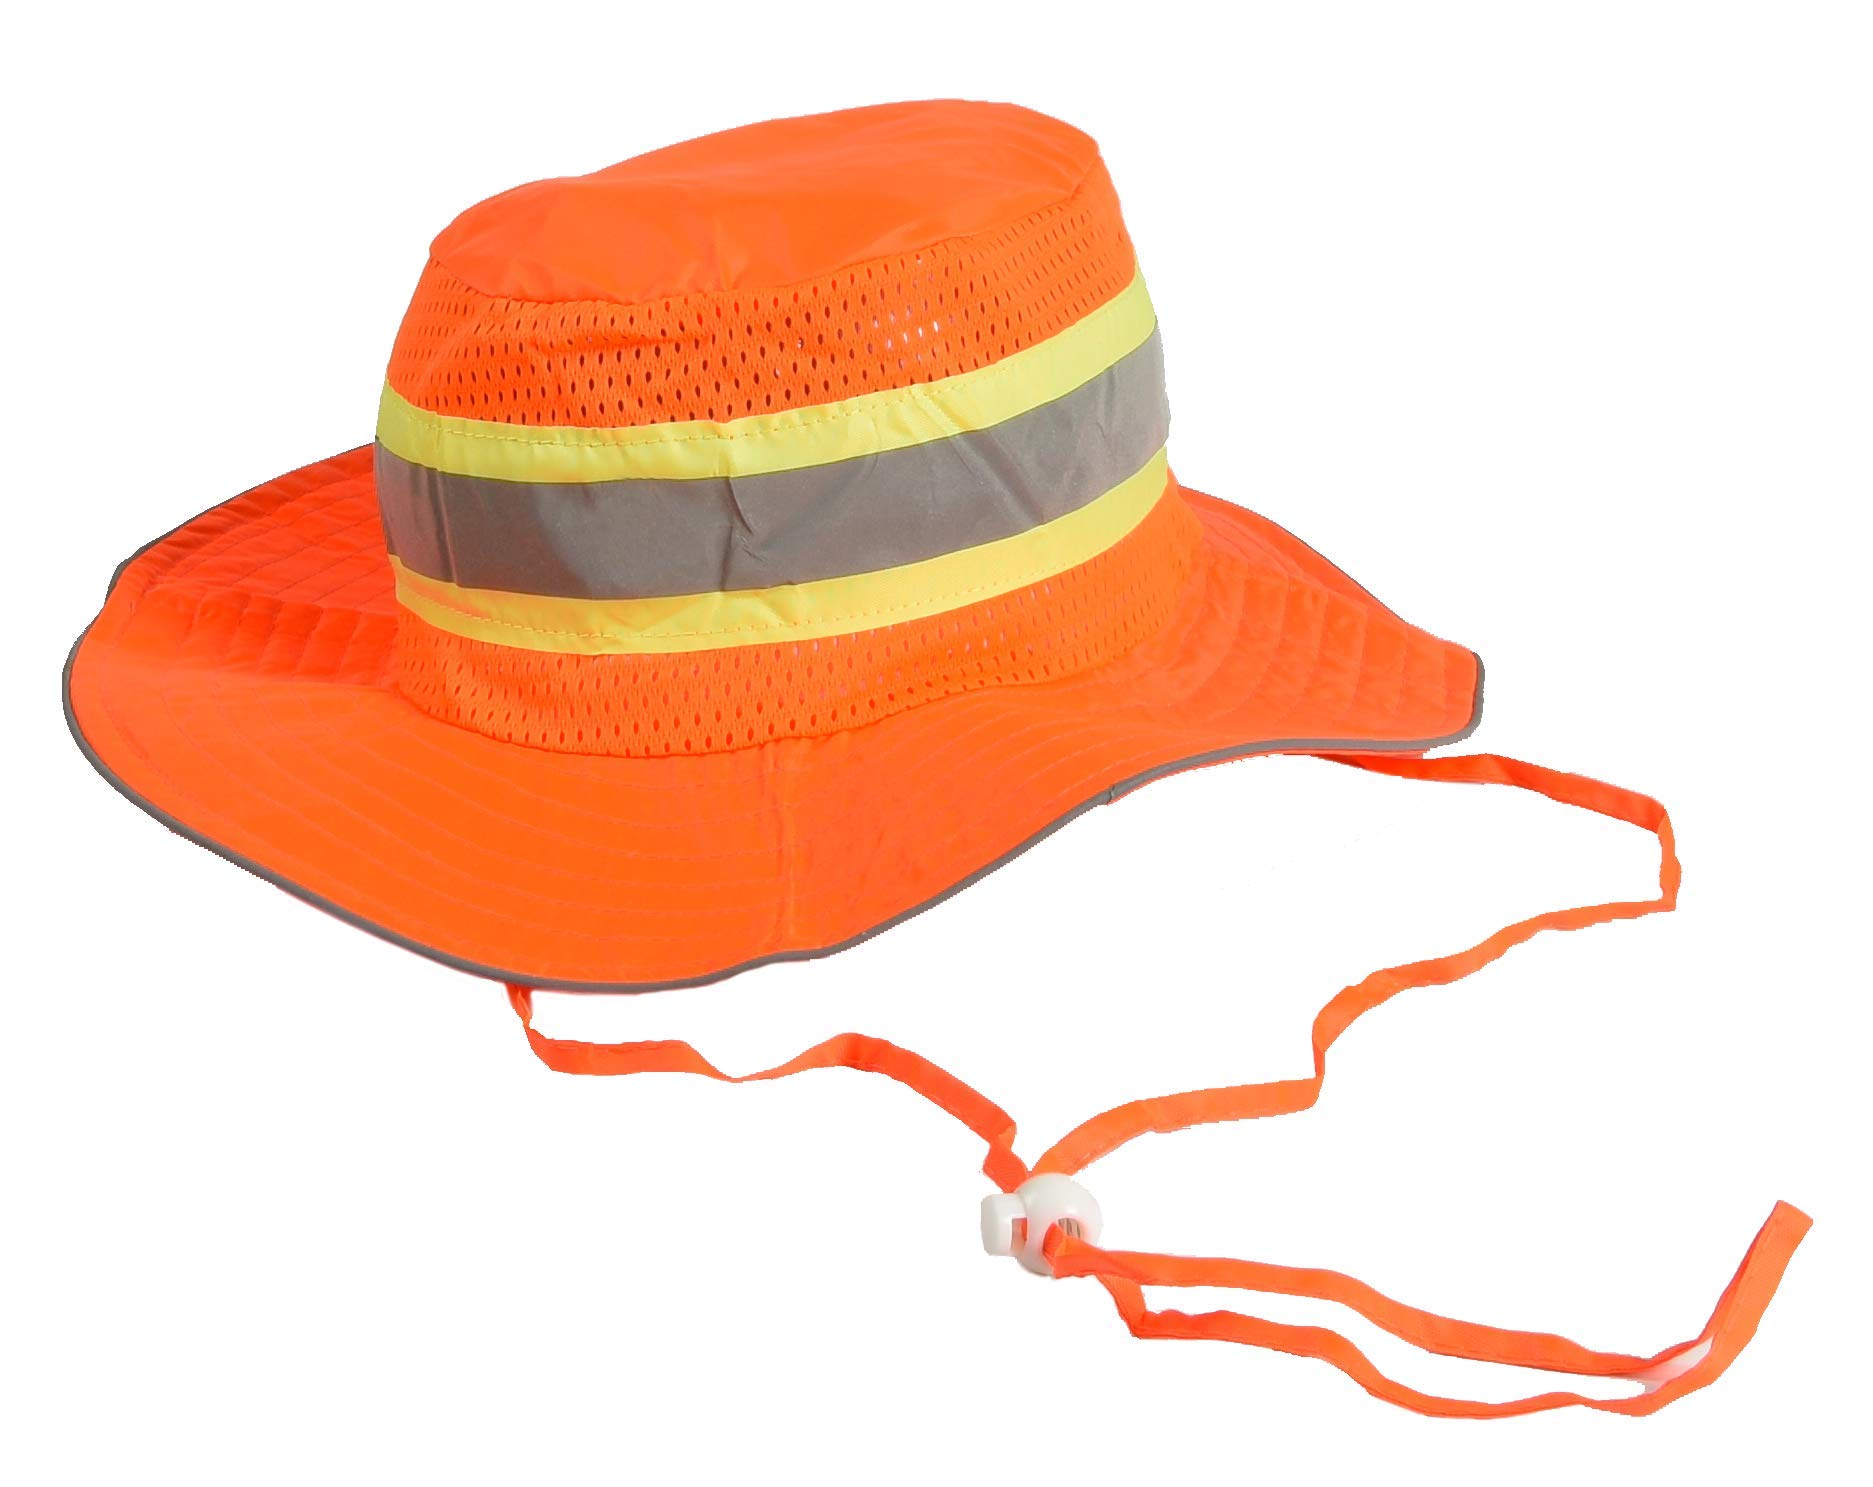 Ironwear 1271-O Booney Hat with Adjustable Neck Strap, LG/XL, Orange (1)